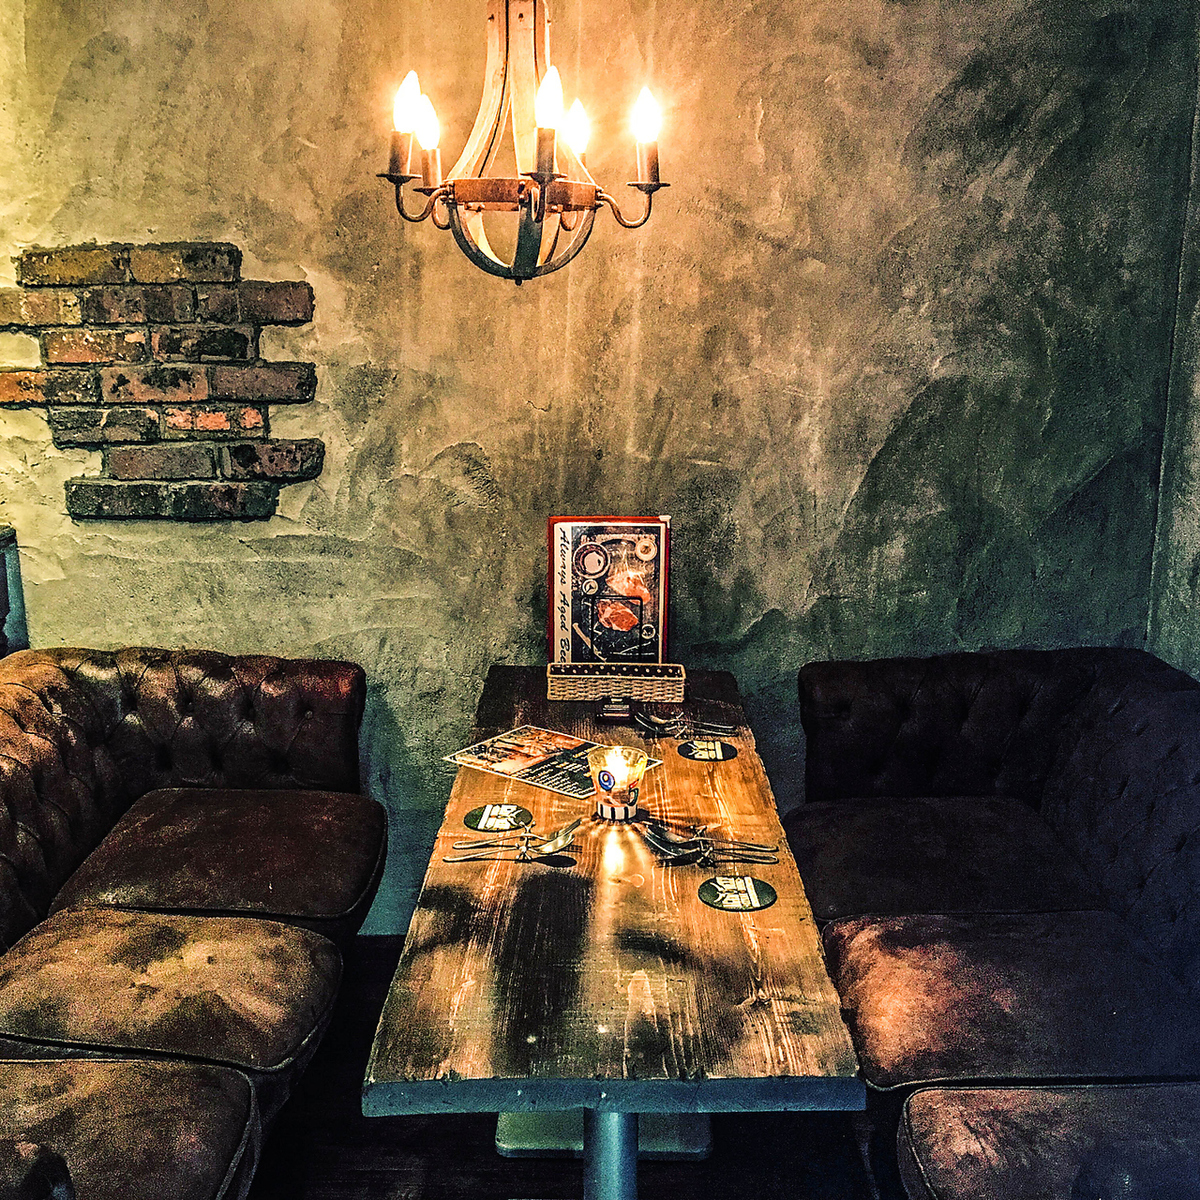 ★ Vintage · Chesterfield Sofa ★ Wall is decorated concrete and antique chandelier ◎ The atmosphere is also relaxing sofa Vintage sofa seat very relaxing.Atmosphere ◎ with vintage table using old trees on the table top